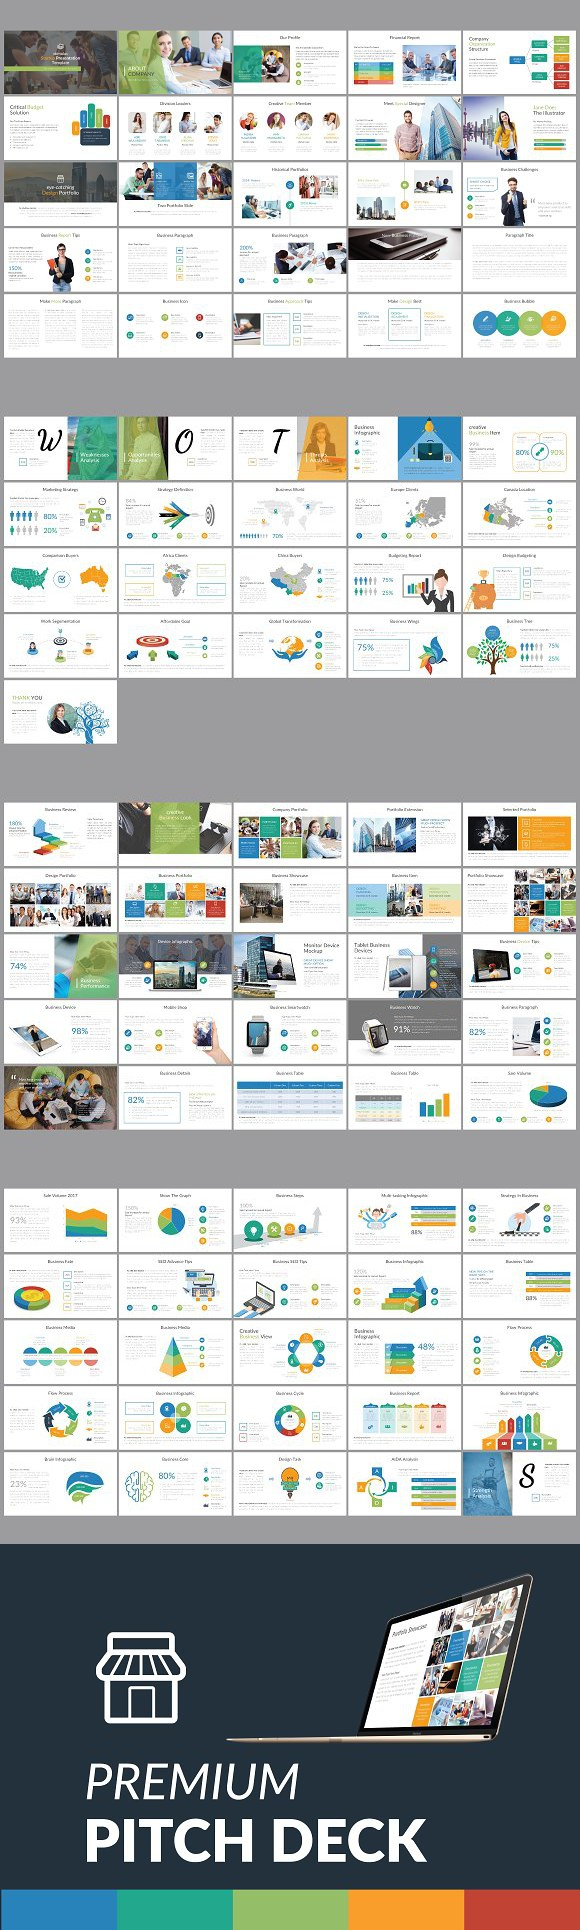 Premium pitch deck template powerpoint templates powerpoint premium pitch deck template powerpoint templates wajeb Image collections